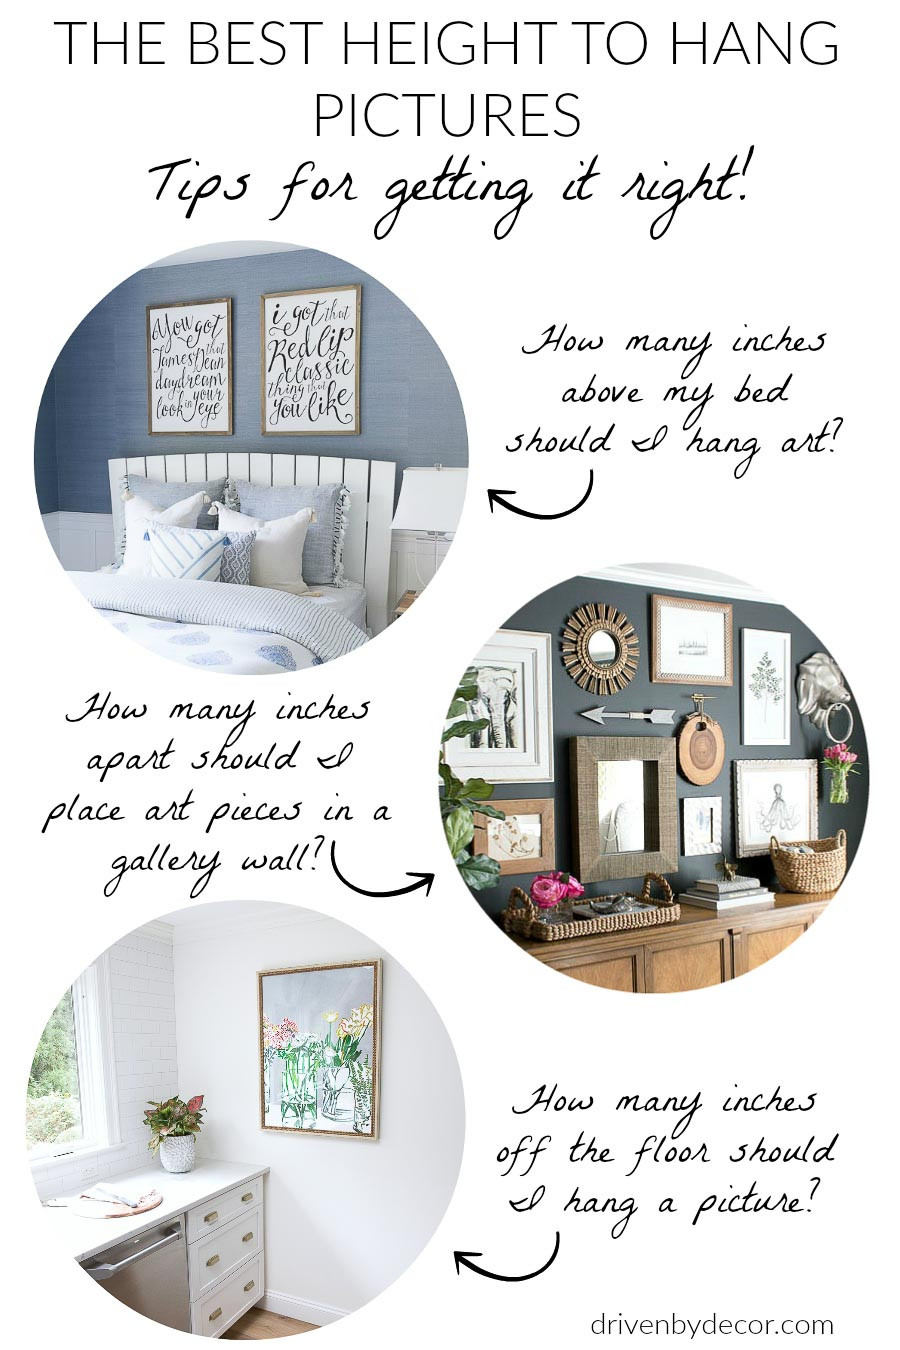 Must-have tips for what height to hang pictures and art on the walls! So helpful!